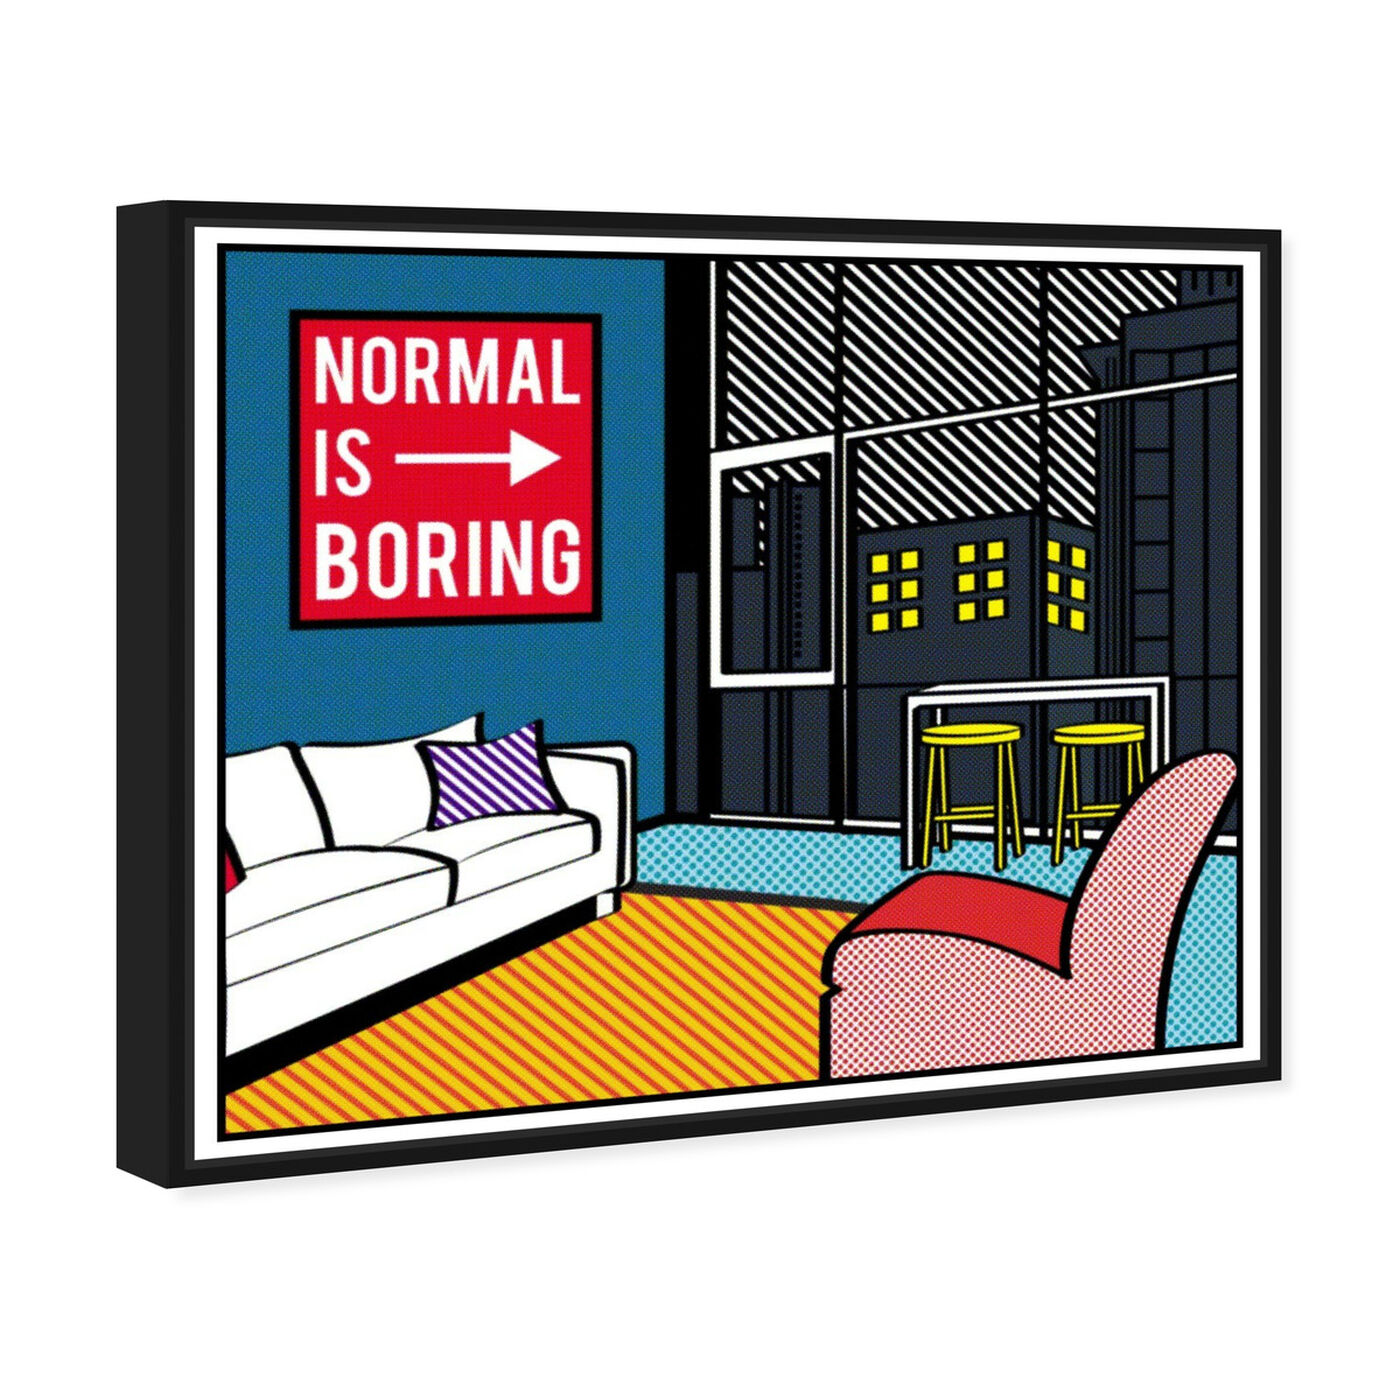 Angled view of Living In The City featuring advertising and comics art.